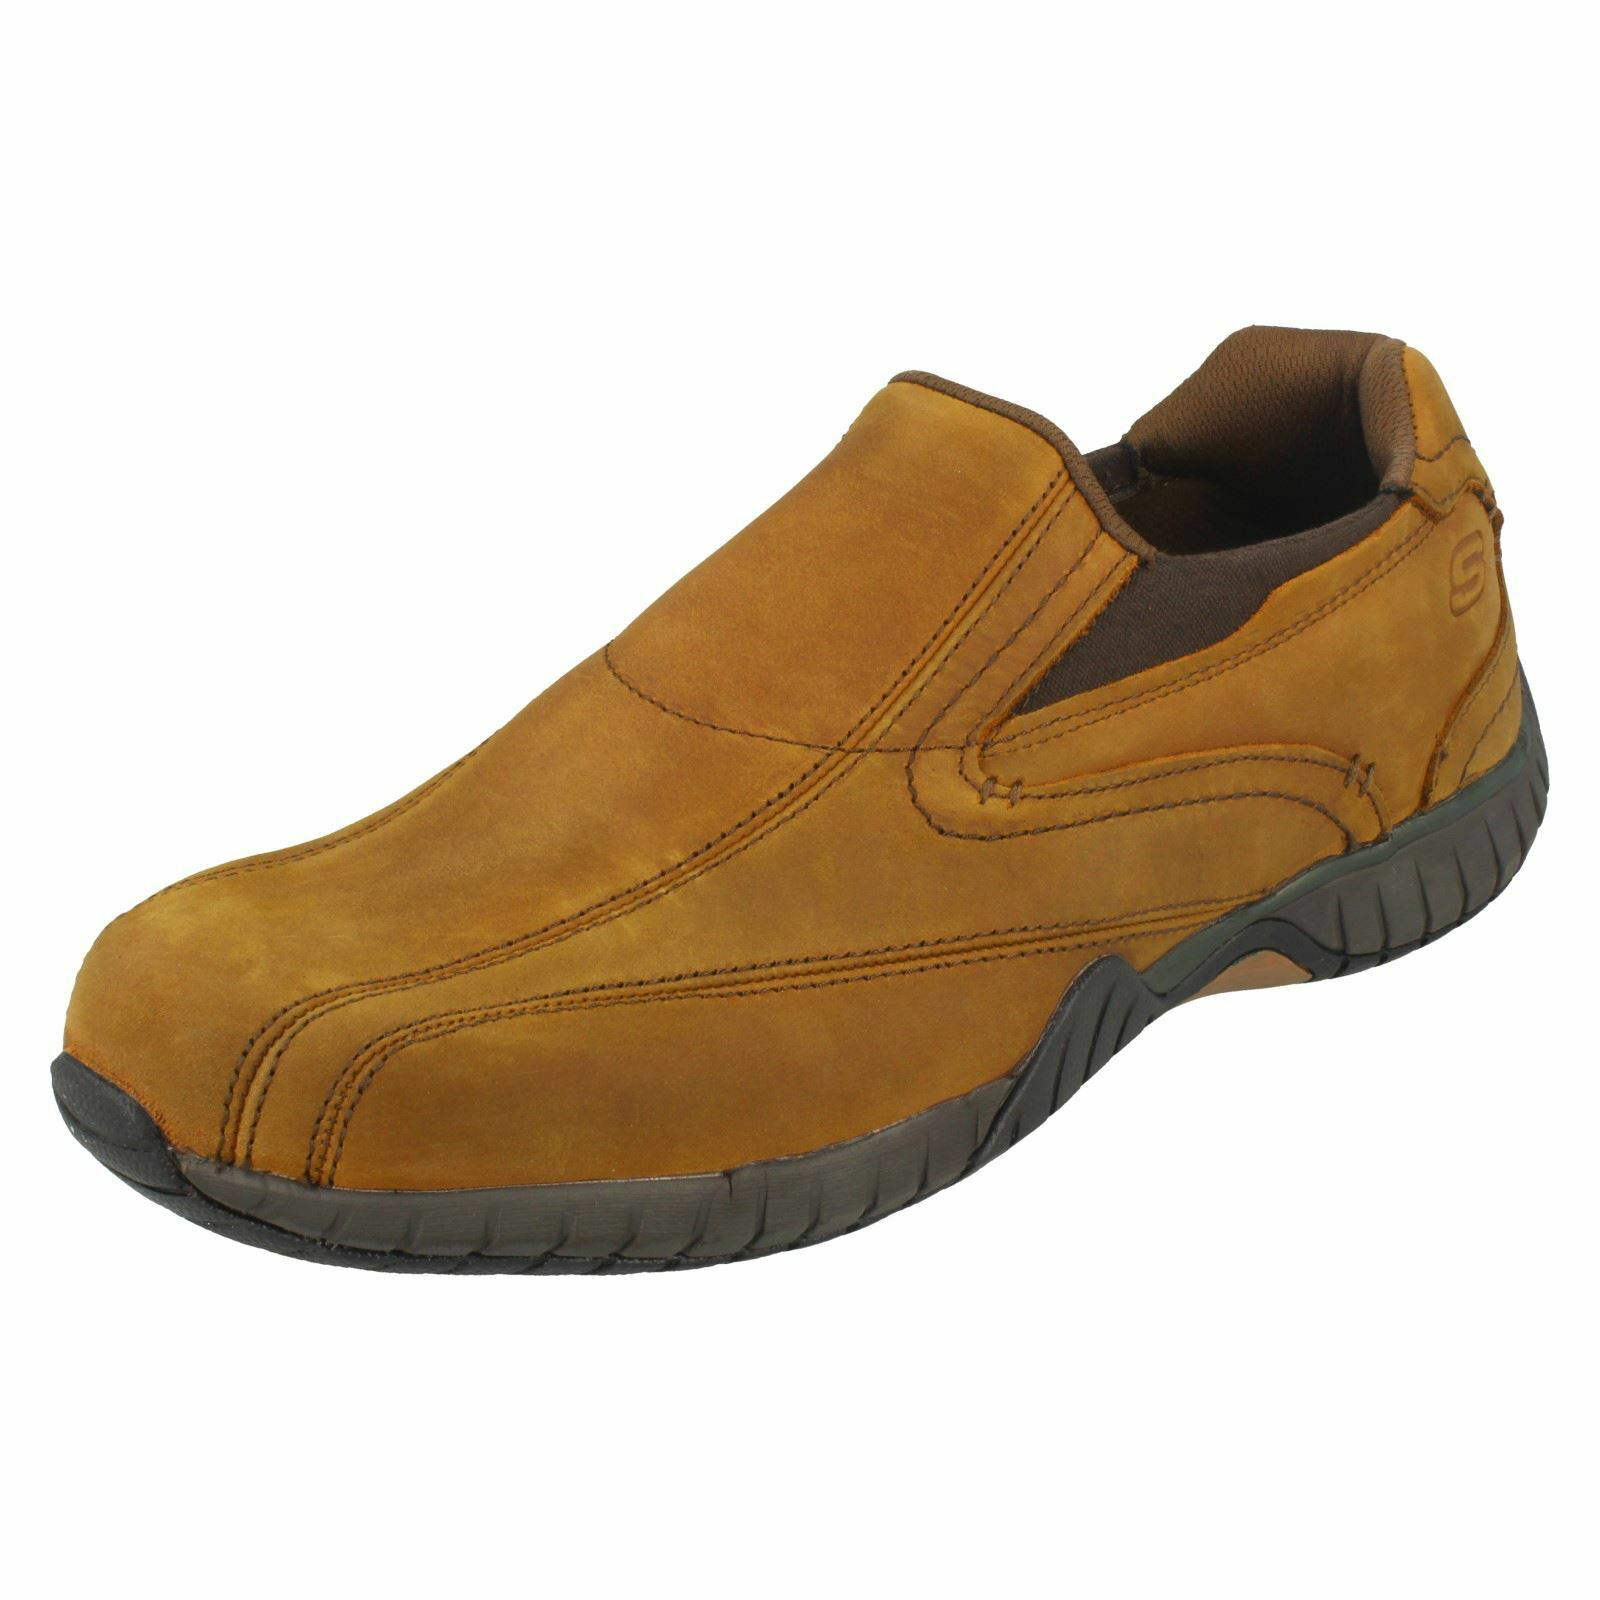 Mens Skechers 65287 Sendro-Bascom Brown Leather Casual Slip On Shoes